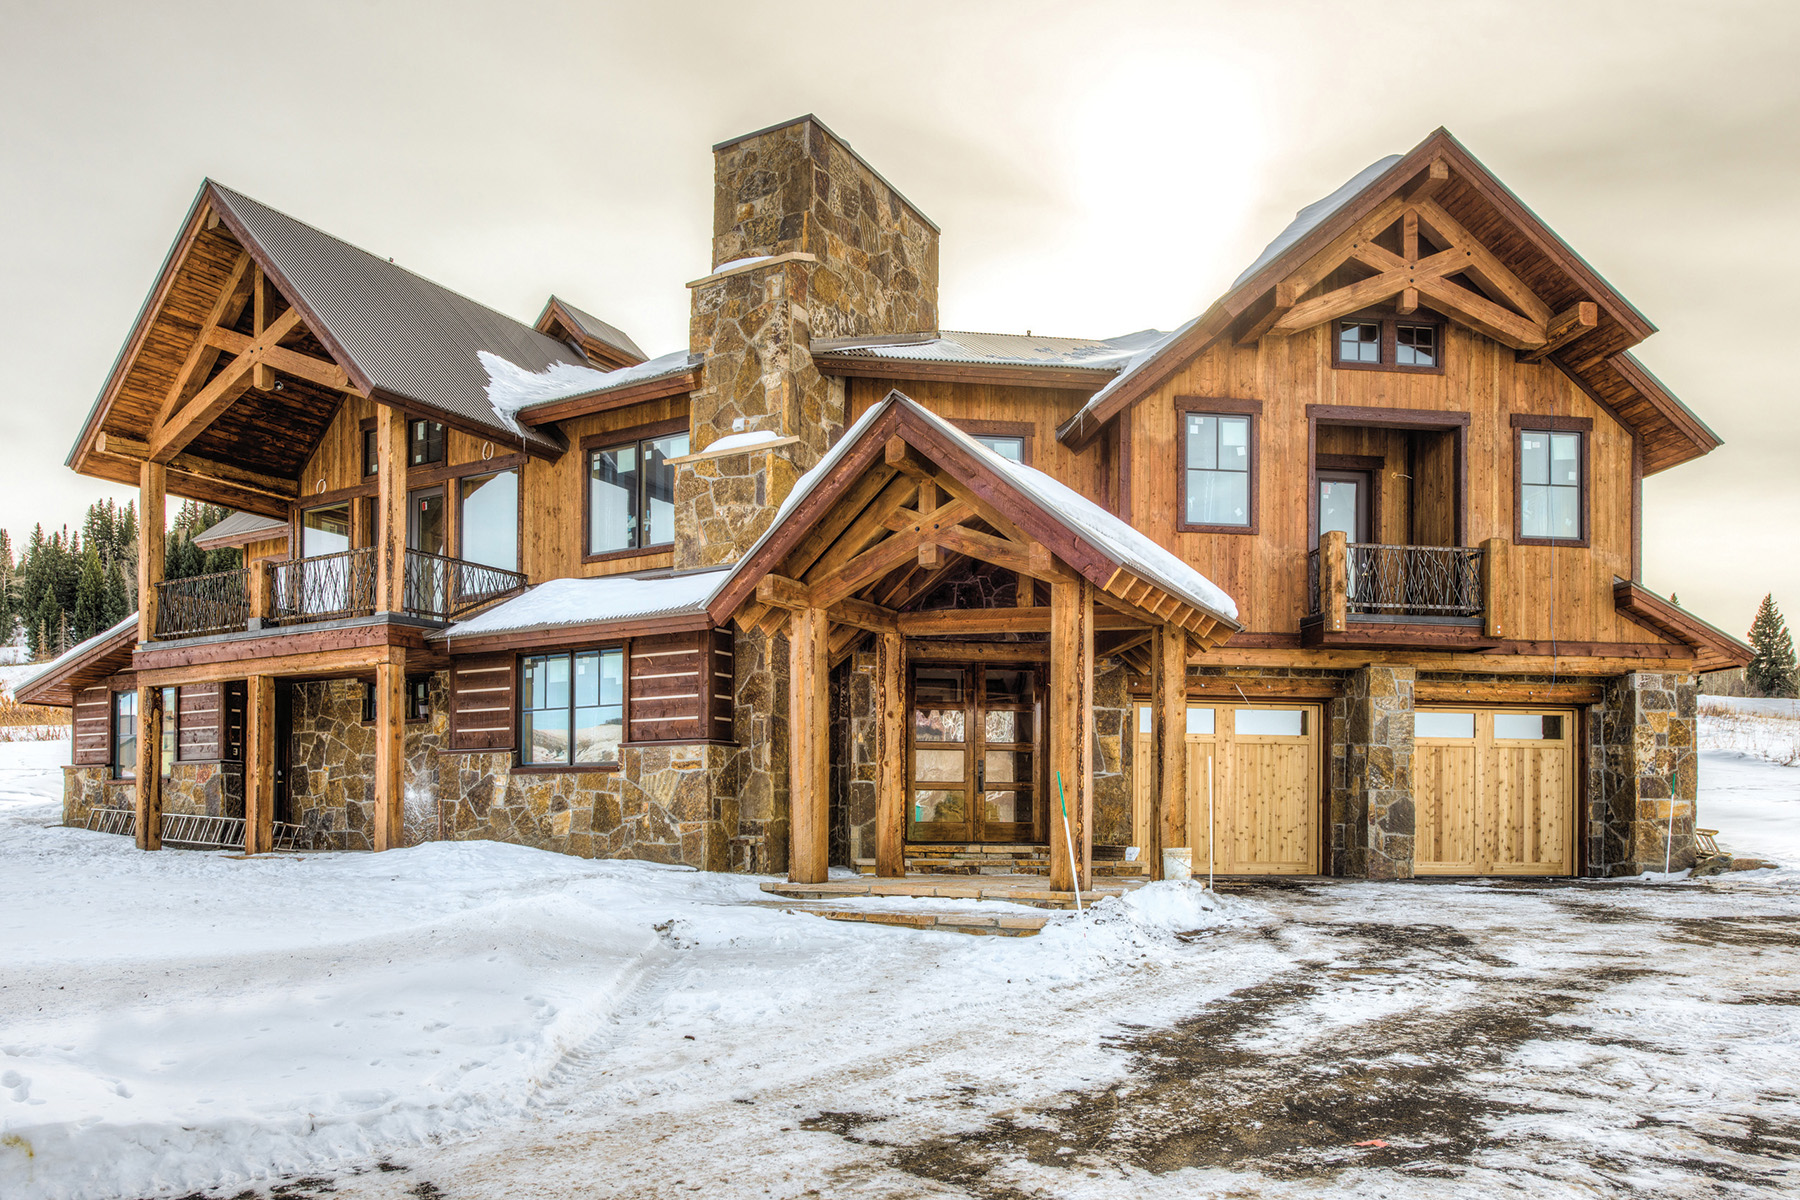 Single Family Home for Sale at Ski In/Ski Out Custom Build 16 Walking Deer Mount Crested Butte, Colorado 81225 United States